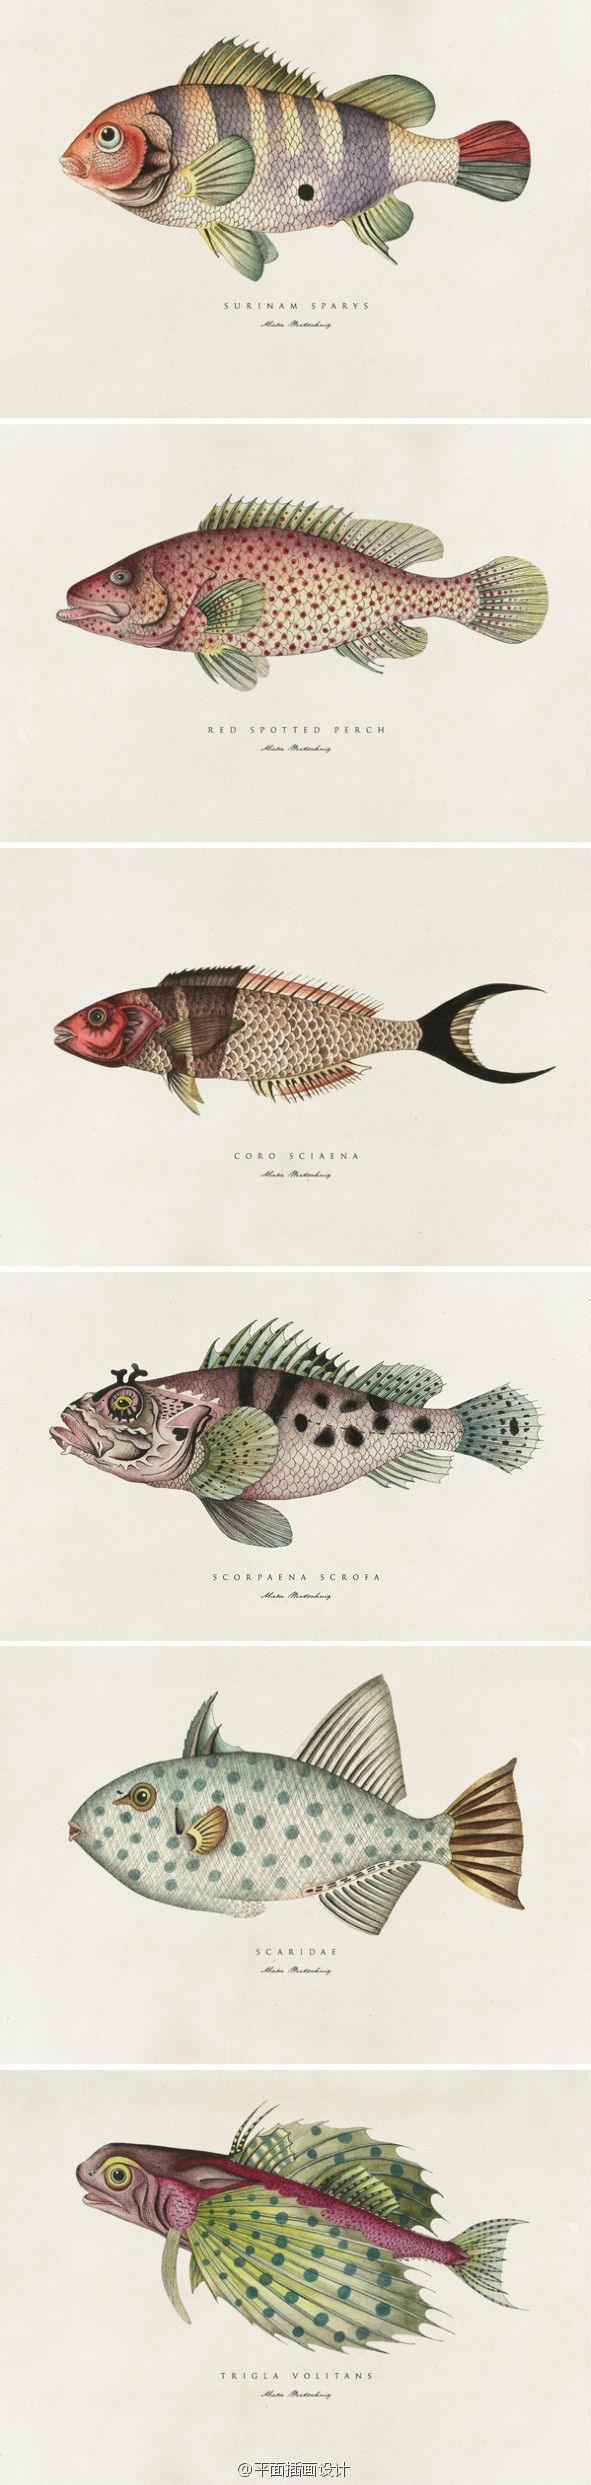 Botanical fish prints by Soil Design, Cape Town, South Africa. Contemporary / HOW AWESOME?